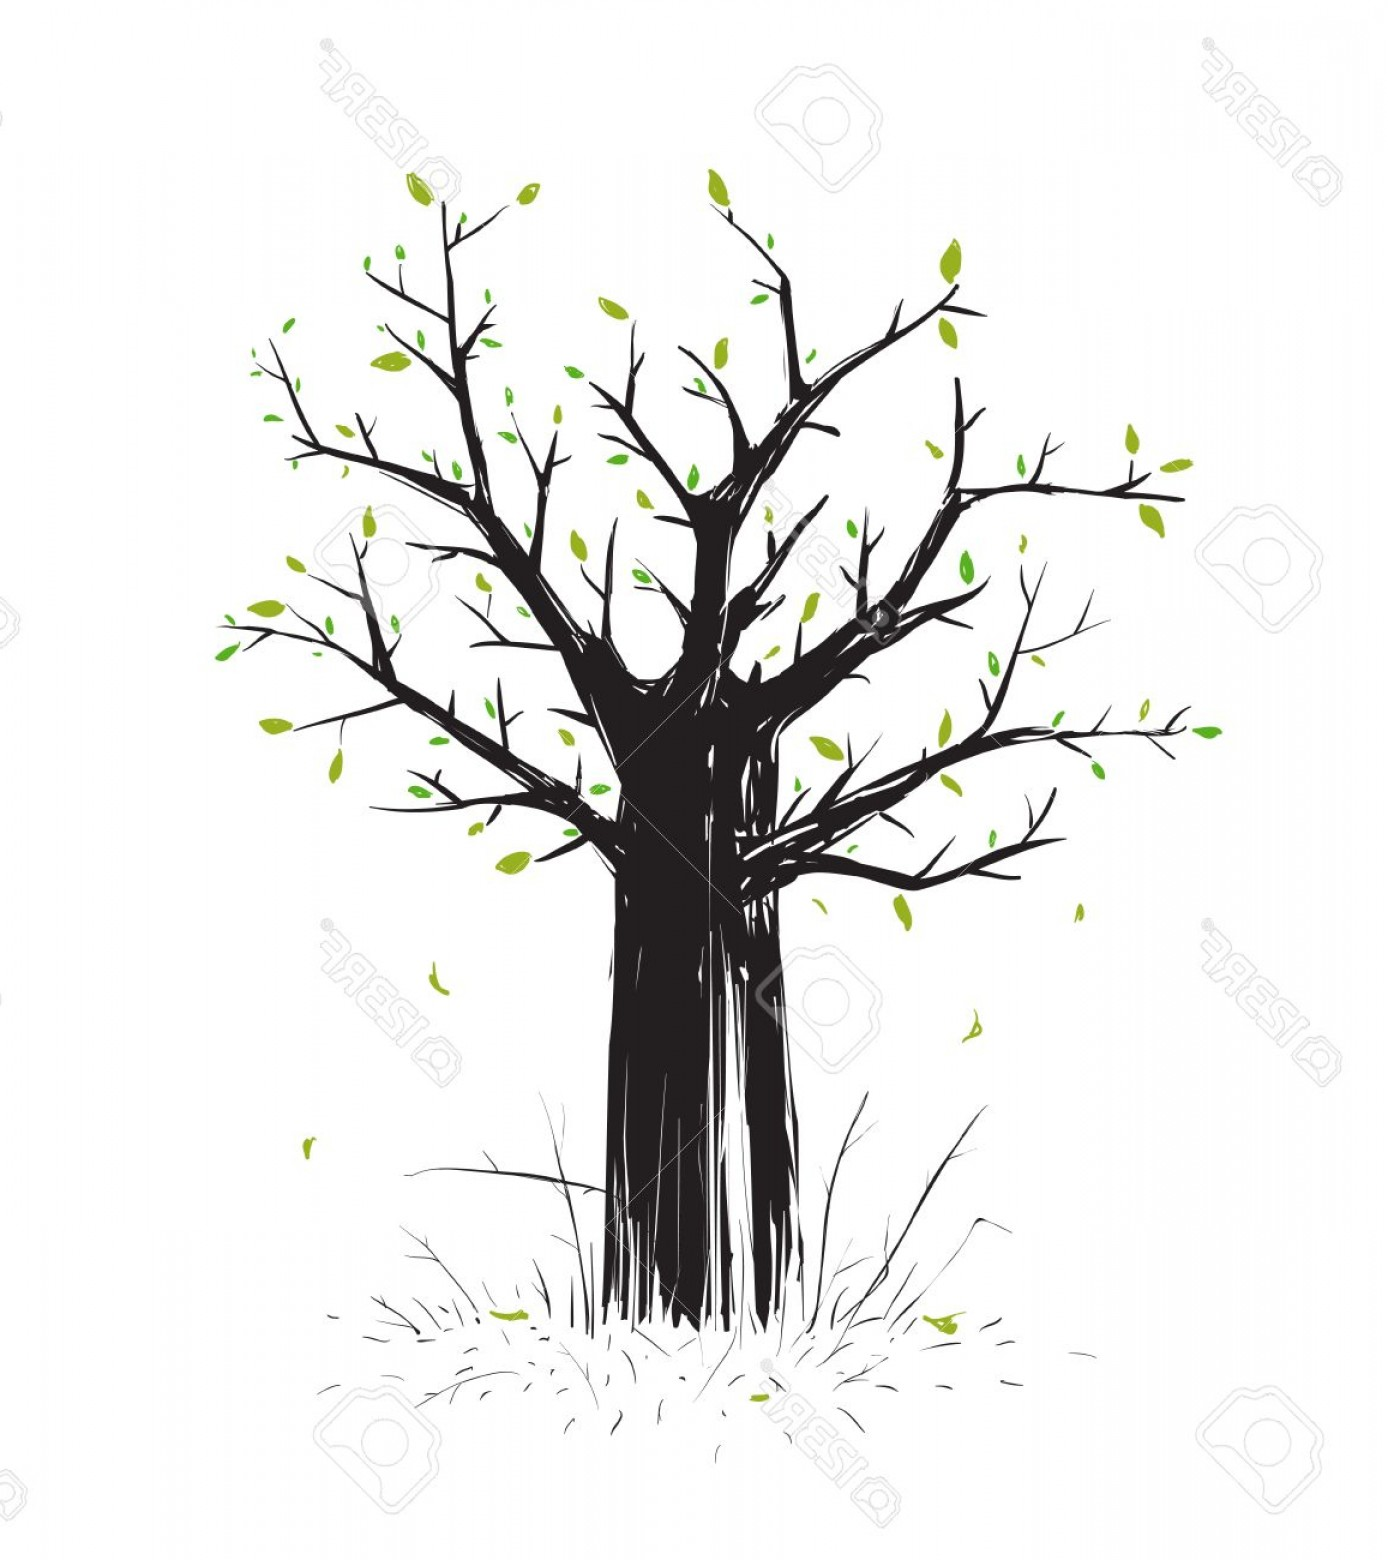 Scratch Y Drawing Vector: Photostock Vector Scratchy Scribble Tree In Black Silhouette Sketchy Freehand Tree Drawing Vector Eps Illustration